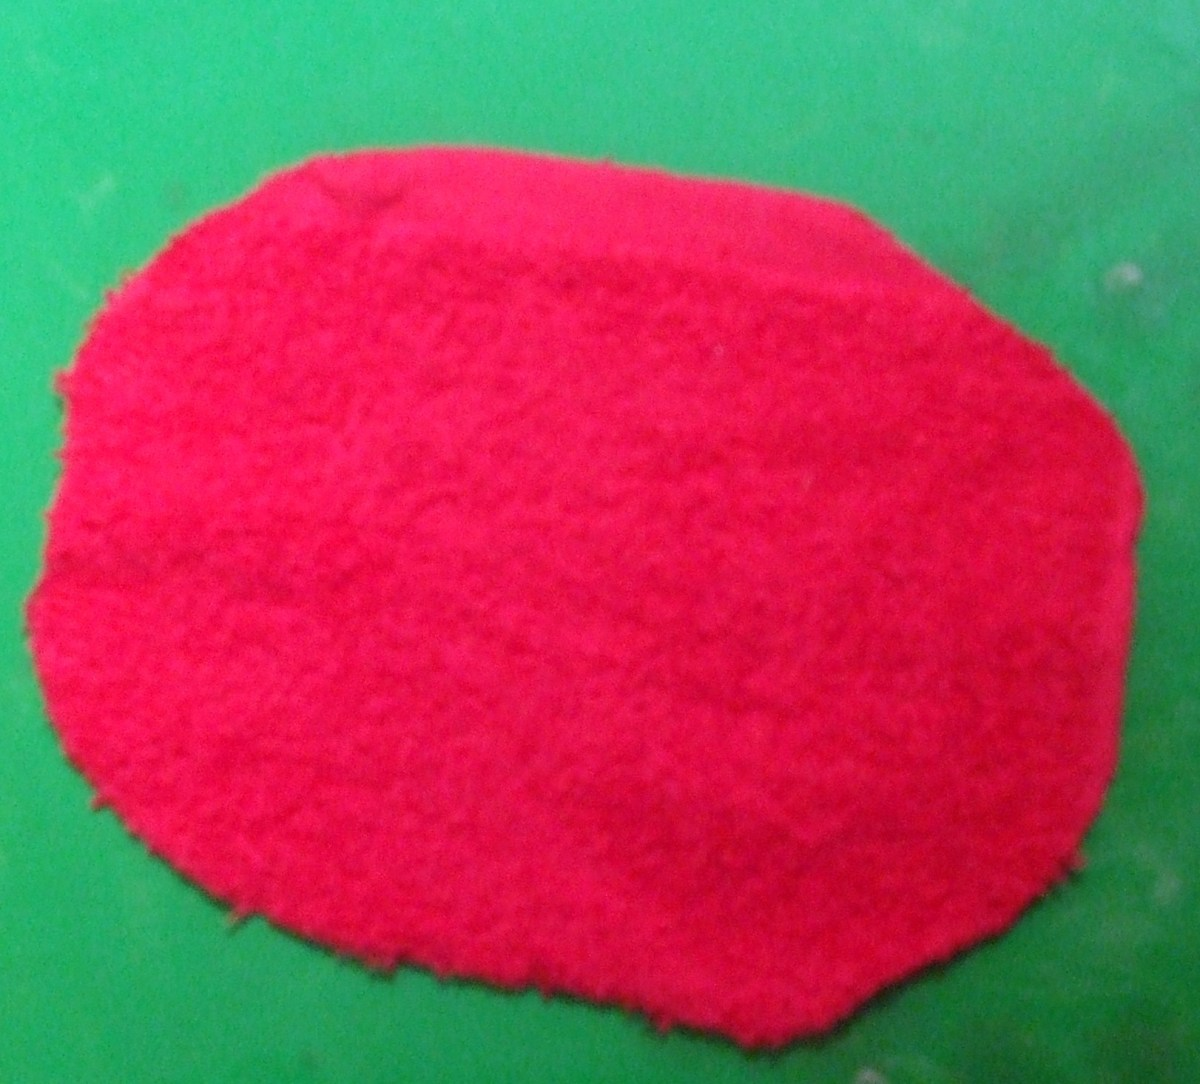 An oval of red fabric for the ladybug costume's back.